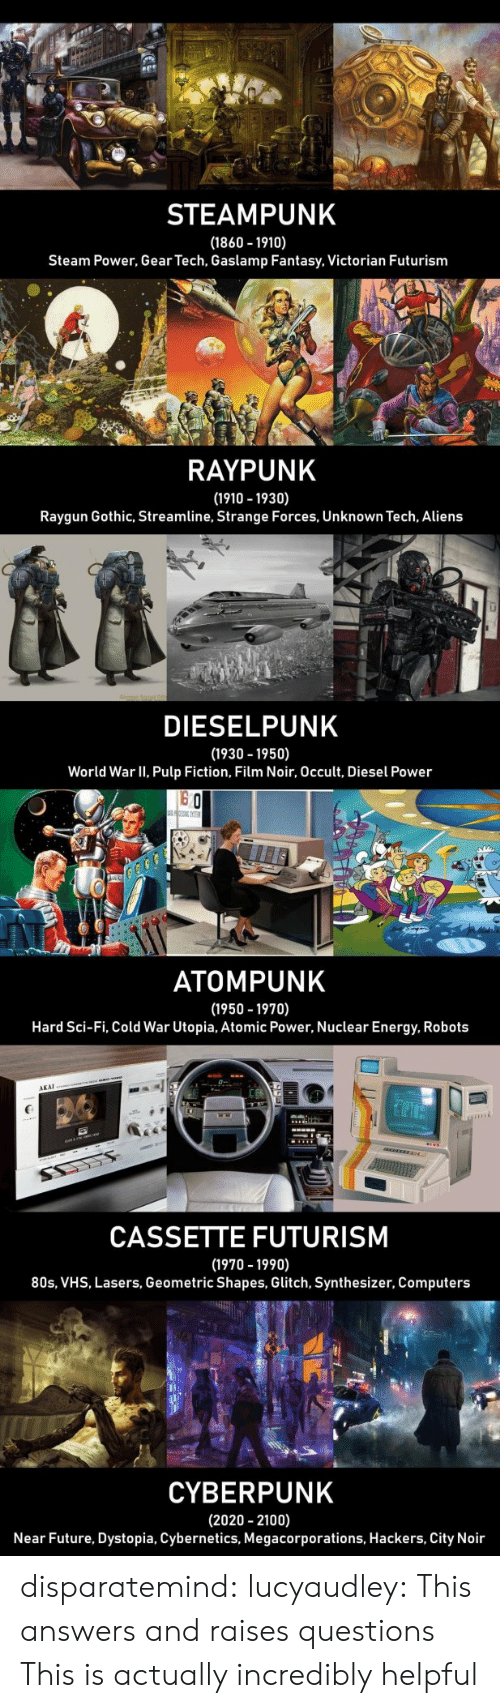 80s, Computers, and Energy: STEAMPUNK  (1860 1910)  Steam Power, Gear Tech, Gaslamp Fantasy, Victorian Futurism  RAYPUNK  (1910 -1930)  Raygun Gothic, Streamline, Strange Forces, Unknown Tech, Aliens  LI  DIESELPUNK  (1930 -1950)  World War II, Pulp Fiction, Film Noir, Occult, Diesel Power  o Ch  ATOMPUNK  (1950 -1970)  Hard Sci-Fi, Cold War Utopia, Atomic Power, Nuclear Energy, Robots  AKAI  CASSETTE FUTURISM  (1970 -1990)  80s, VHS, Lasers, Geometric Shapes, Glitch, Synthesizer, Computers  CYBERPUNK  (2020 2100)  Near Future, Dystopia, Cybernetics, Megacorporations, Hackers, City Noir disparatemind: lucyaudley: This answers and raises questions   This is actually incredibly helpful